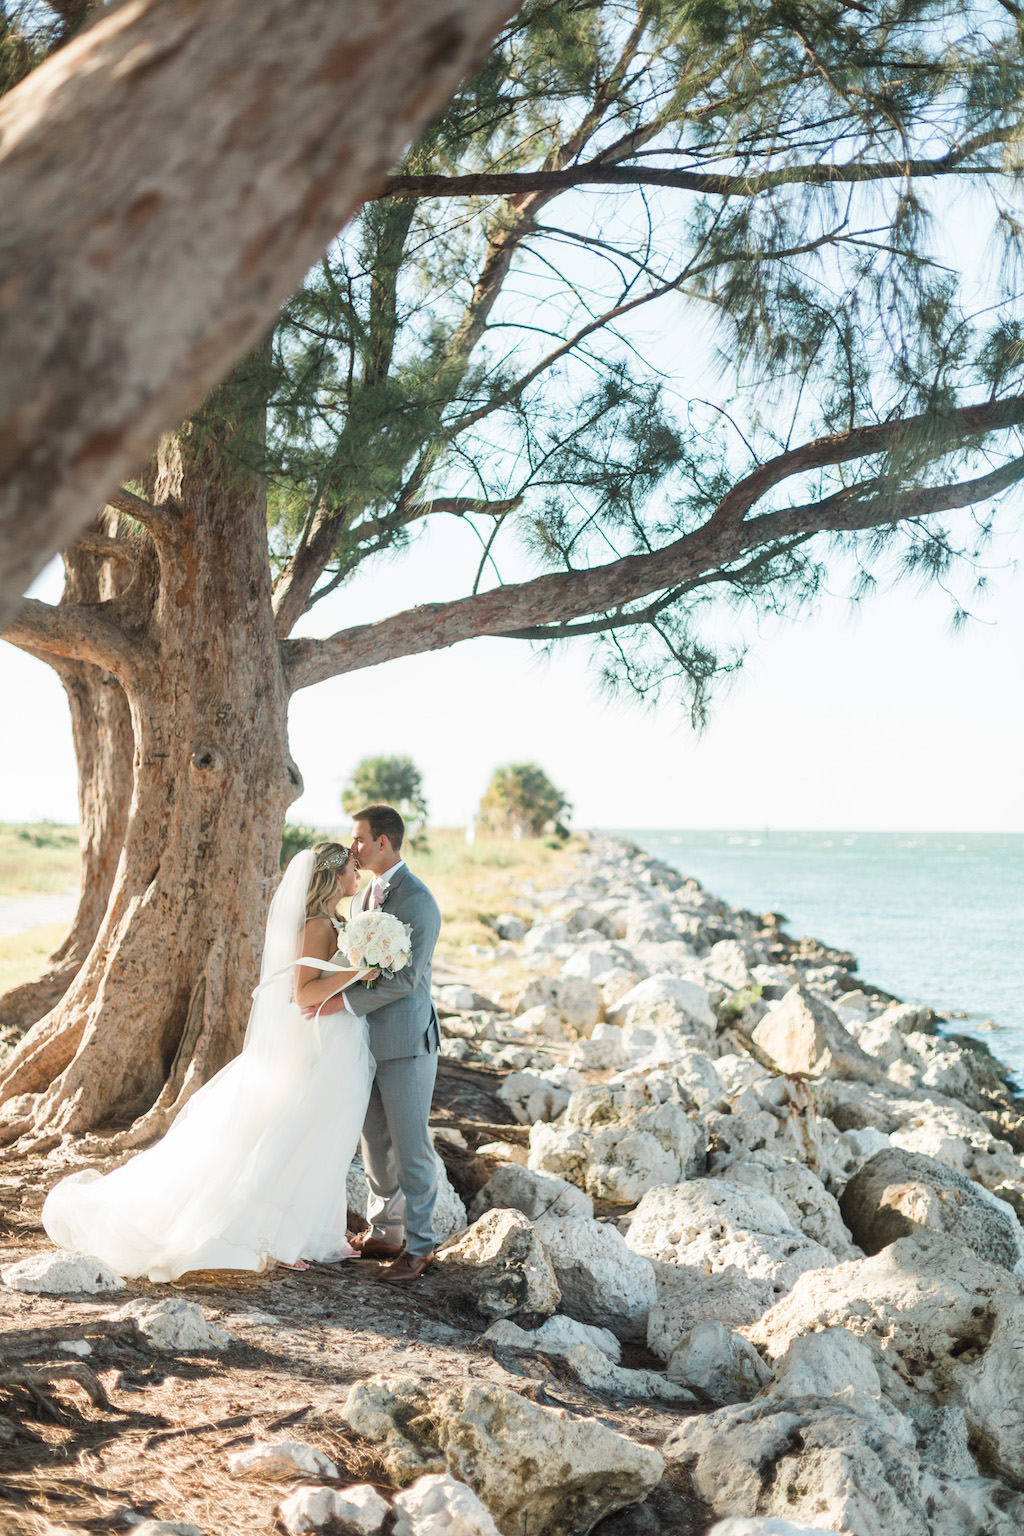 Outdoor Beach Wedding Bride and Groom Portrait, Groom in Gray Suit with Blush Pink Tie and Rose Boutonniere, Bride in Halter Ballgown Hayley Paige Wedding Dress with White Rose Bouquet and Jeweled Headband   Whimsical Clearwater Beach Wedding